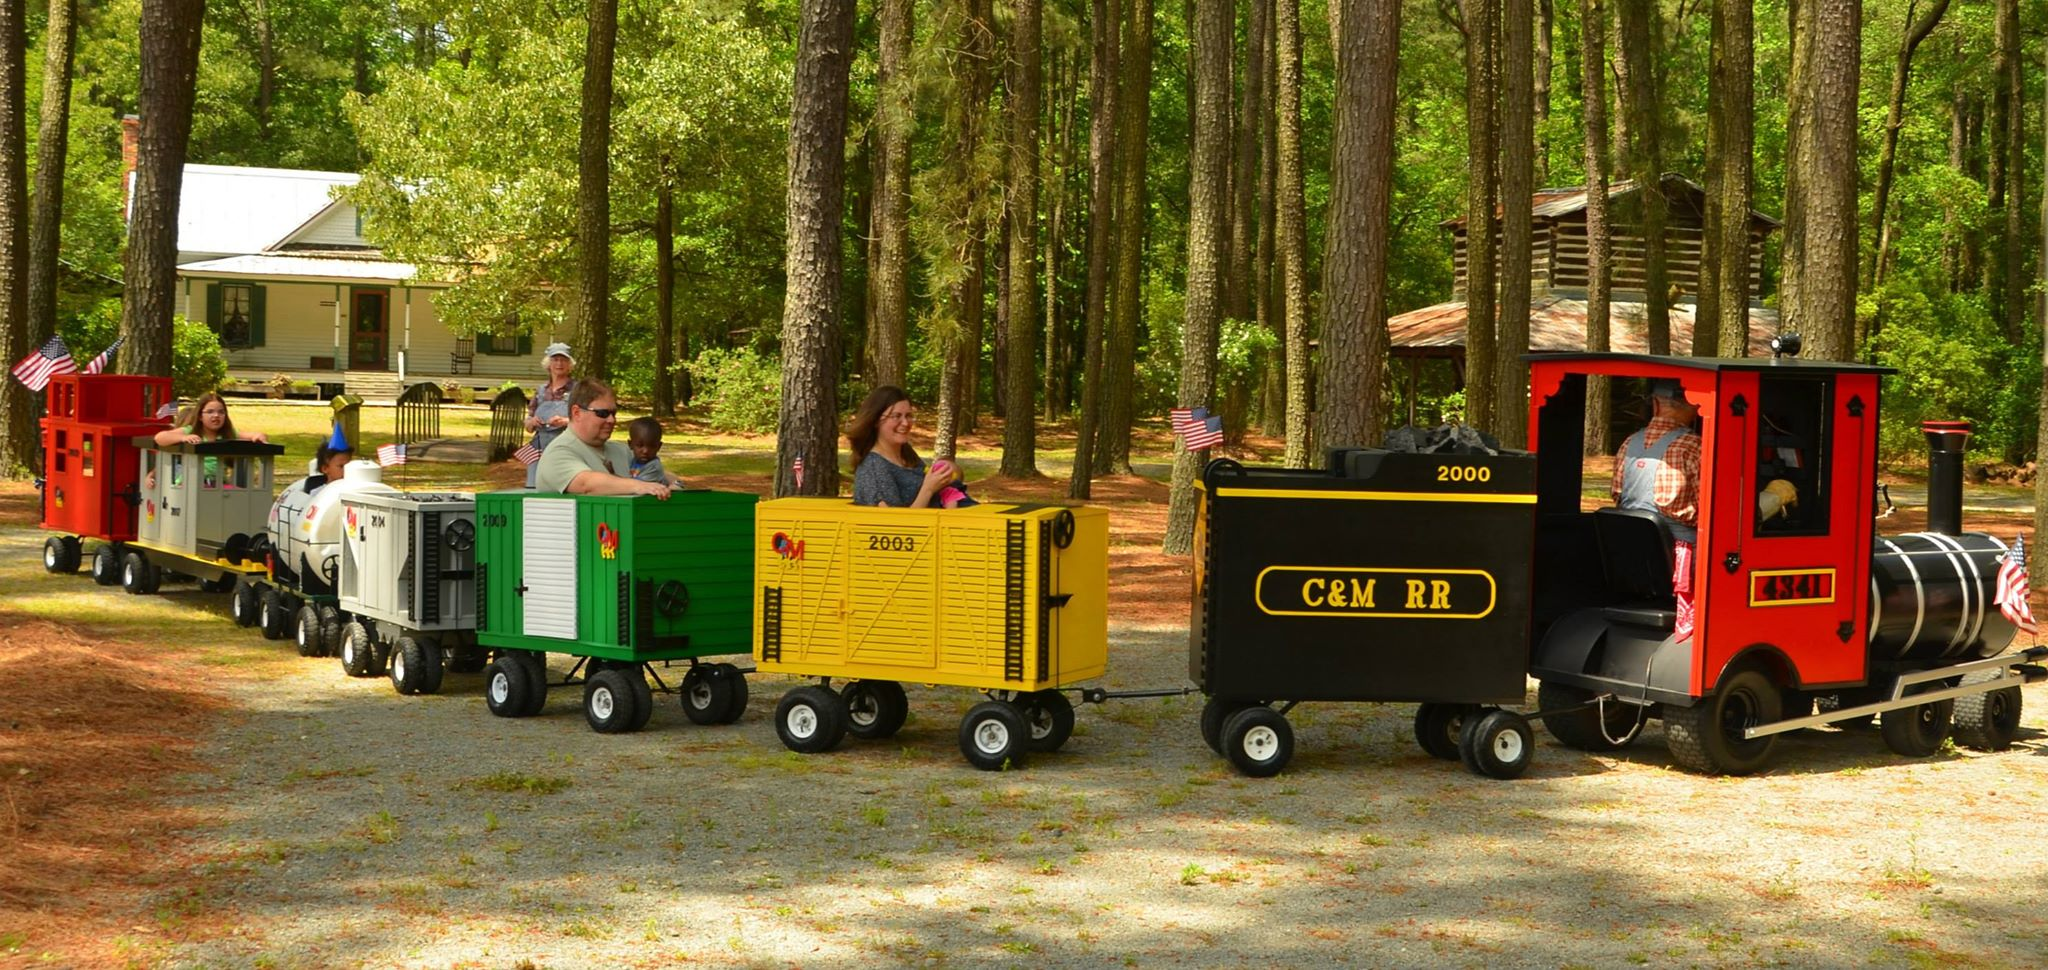 Train ride on the grounds